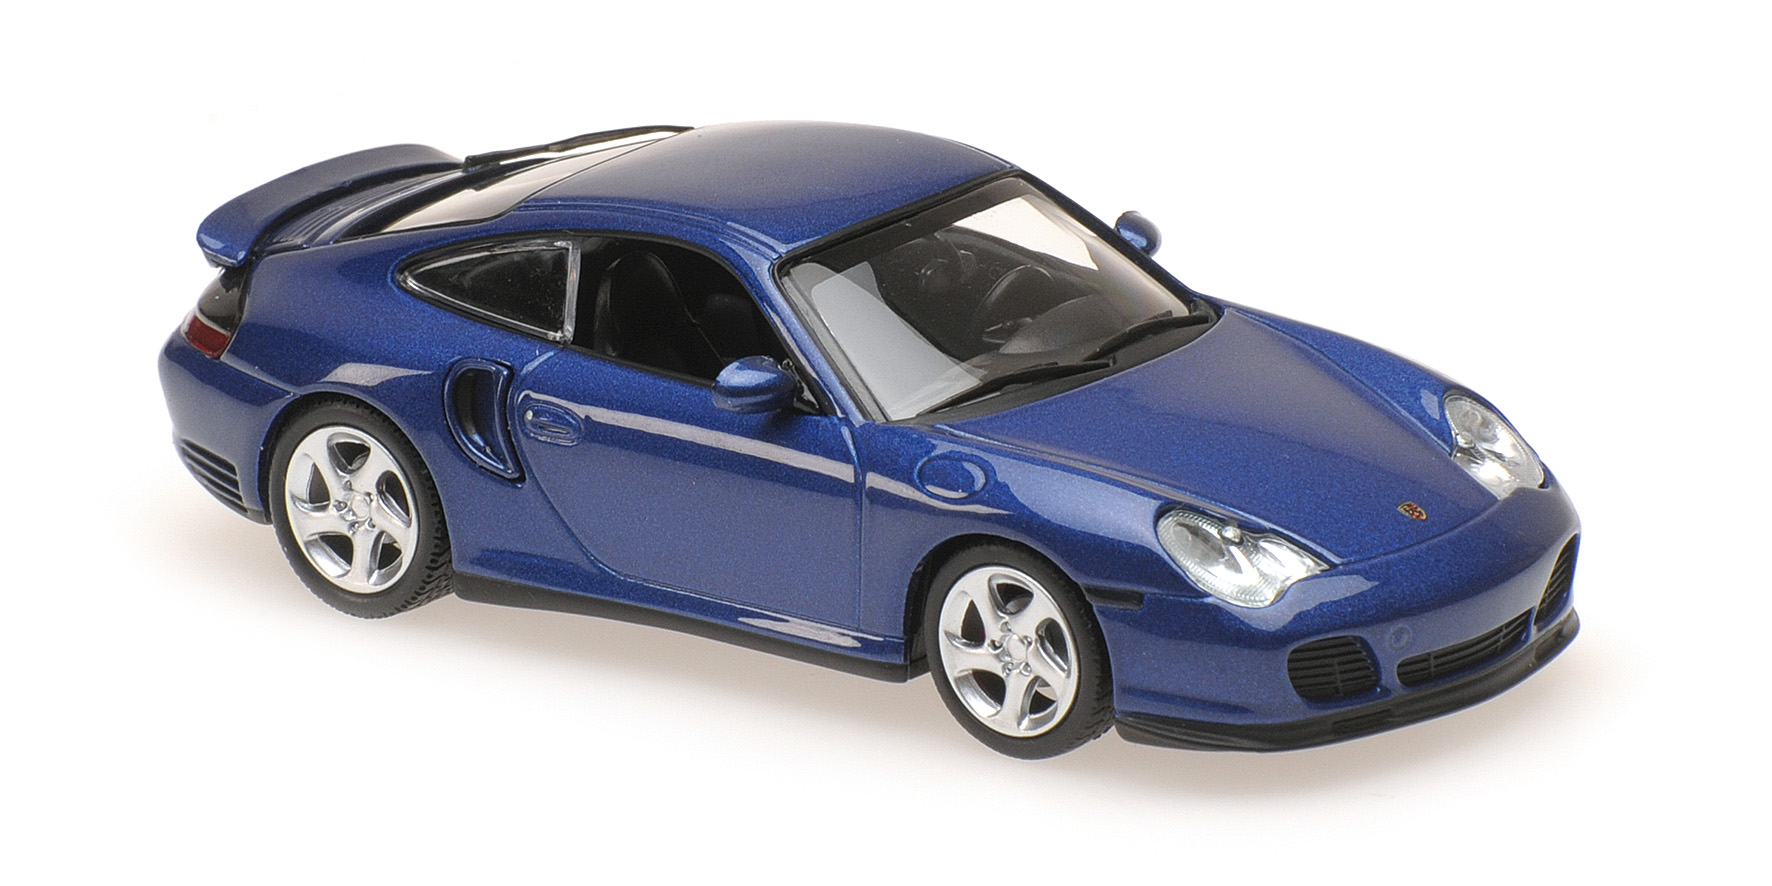 Porsche 911 (996) Turbo 1999 Blauw Metallic